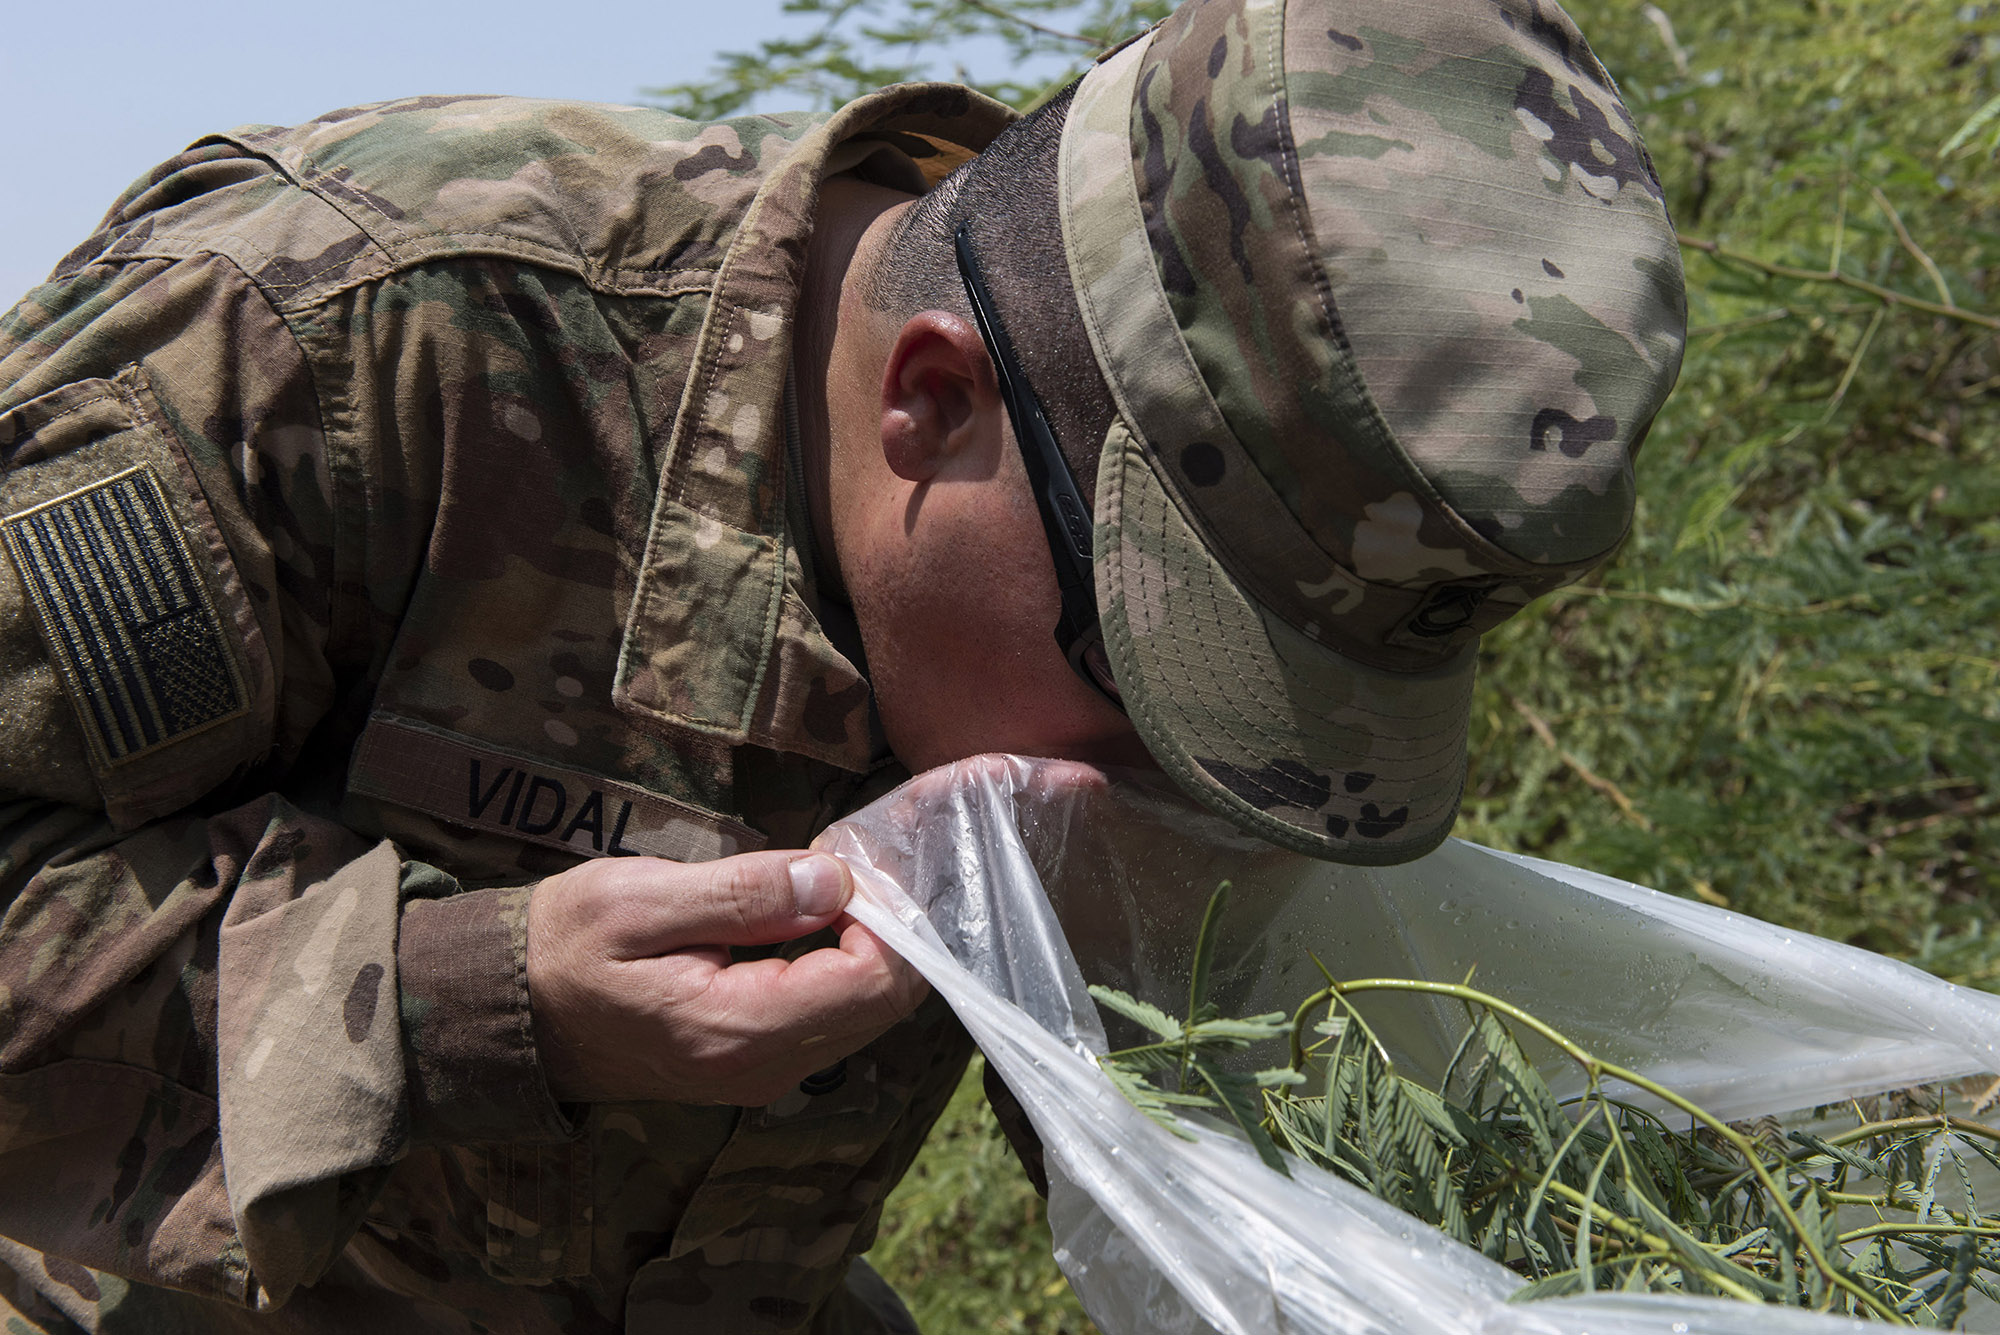 U.S. Army Sgt. 1st Class Amando Vidal, a field artillery firefinder radar operator with 3rd Battalion, 133rd Field Artillery Regiment, Texas National Guard, attempts to drink water collected during survival skills training on Camp Lemonnier, Djibouti, Oct. 13, 2018. During this training, Vidal performed various skills such as constructing a shelter, finding alternative water sources and signaling for rescue. (U.S. Air National Guard photo by Master Sgt. Sarah Mattison)